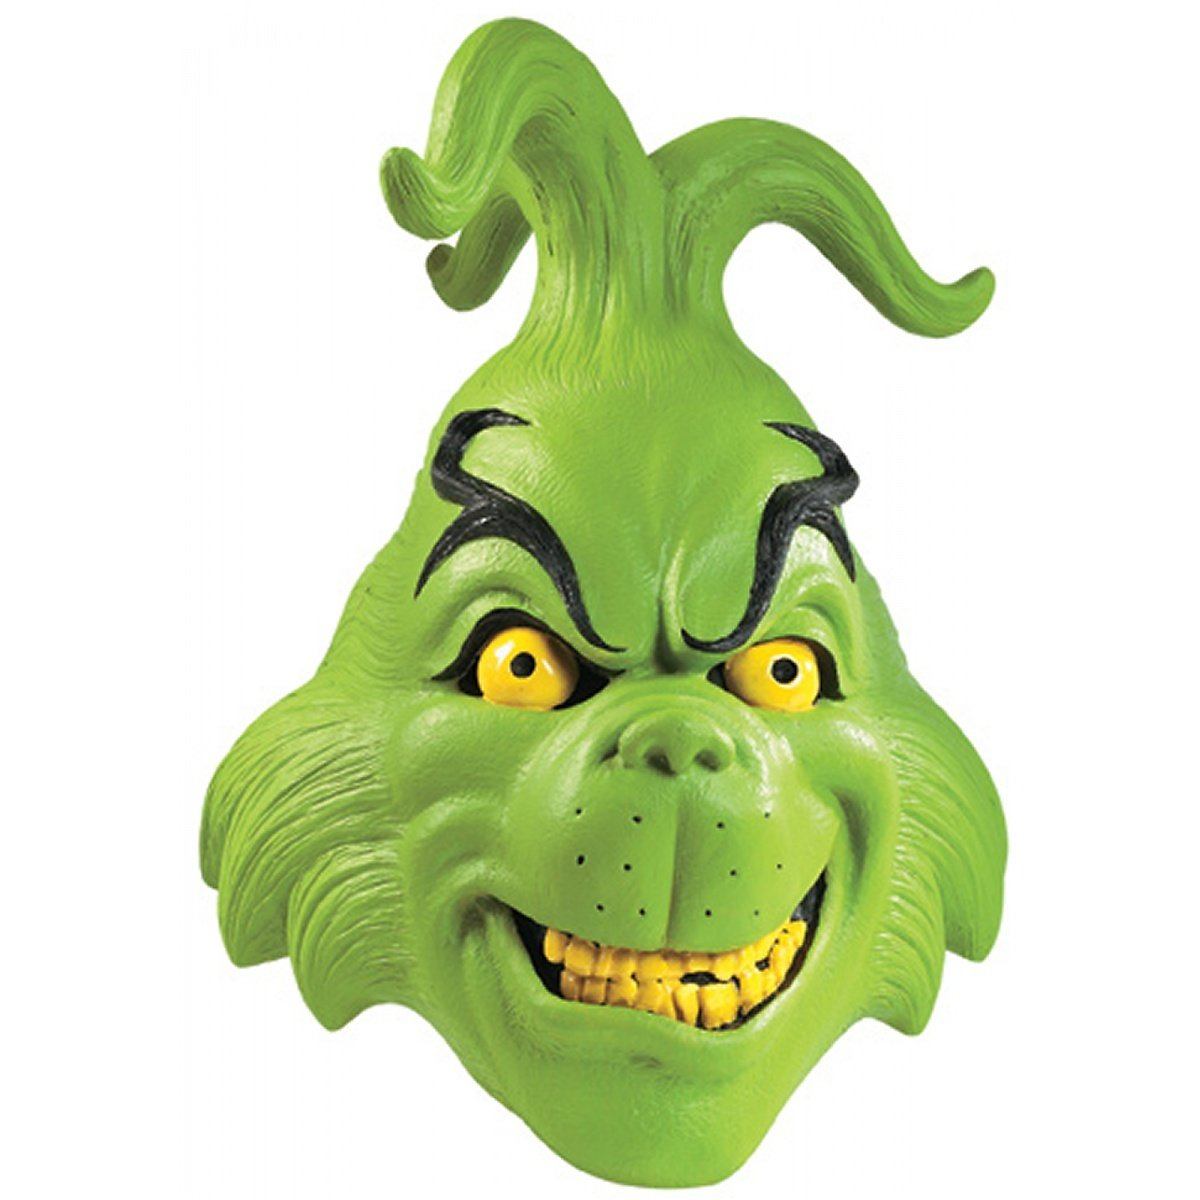 graphic relating to Grinch Mask Printable known as The Grinch Mask Dress Accent